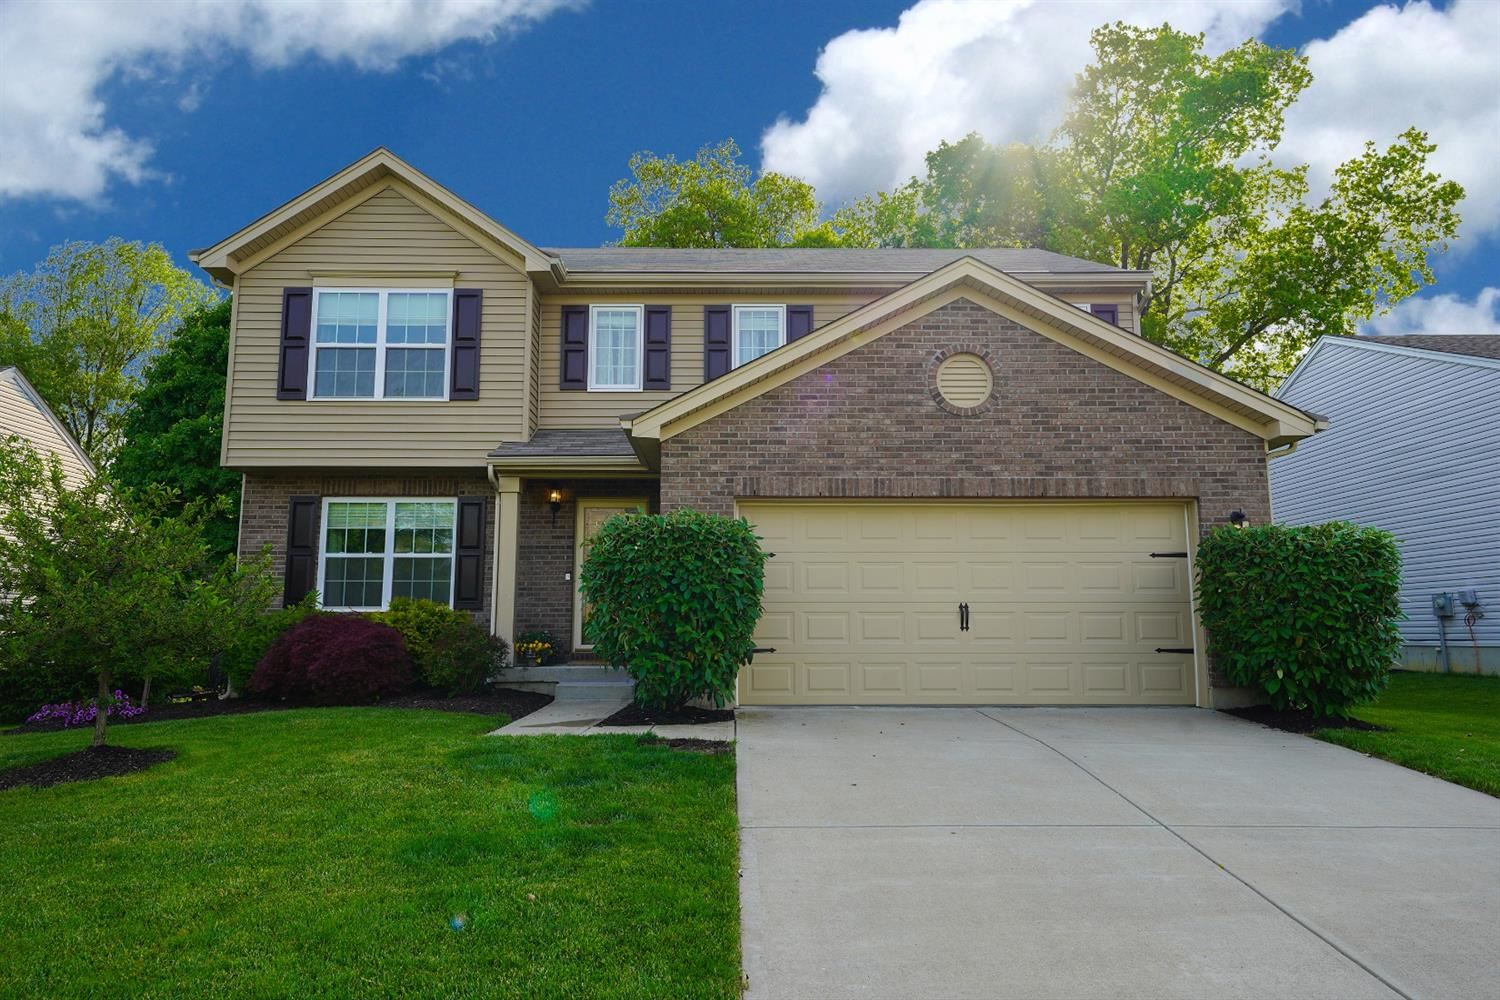 5945 Turning Leaf Way, Maineville, OH 45039 - #: 1700545